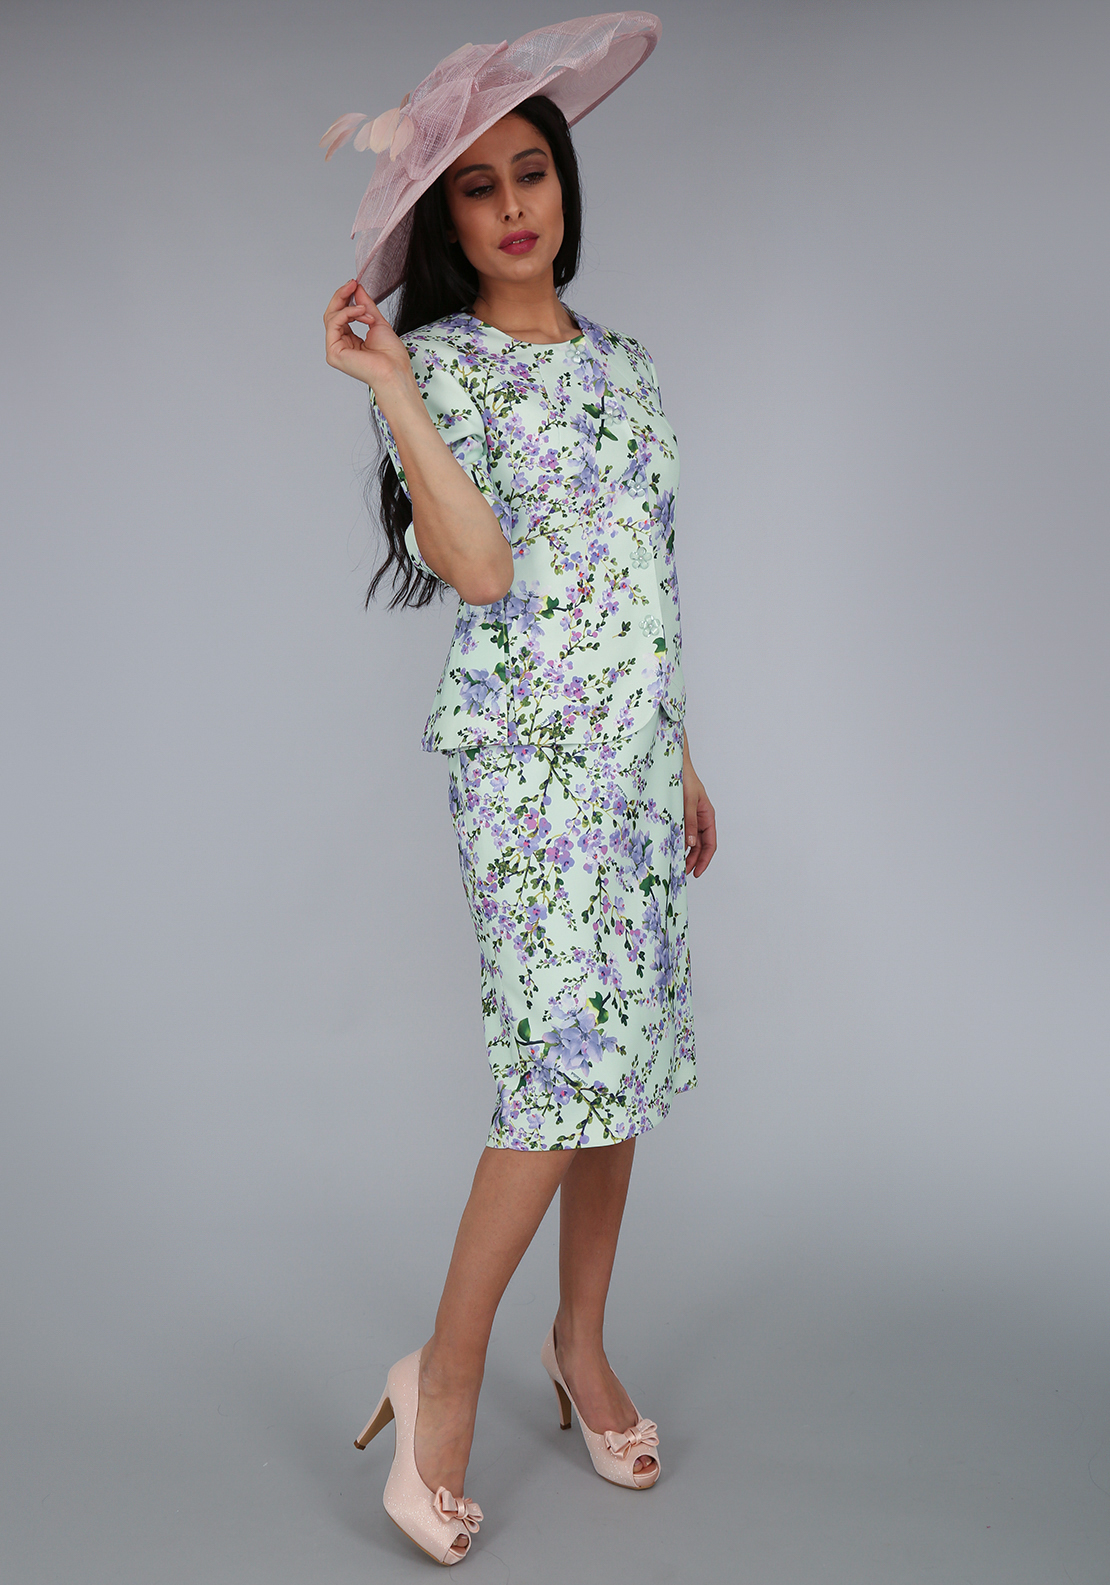 Umit Kutluk Floral Print Dress and Jacket Outift, Mint Green